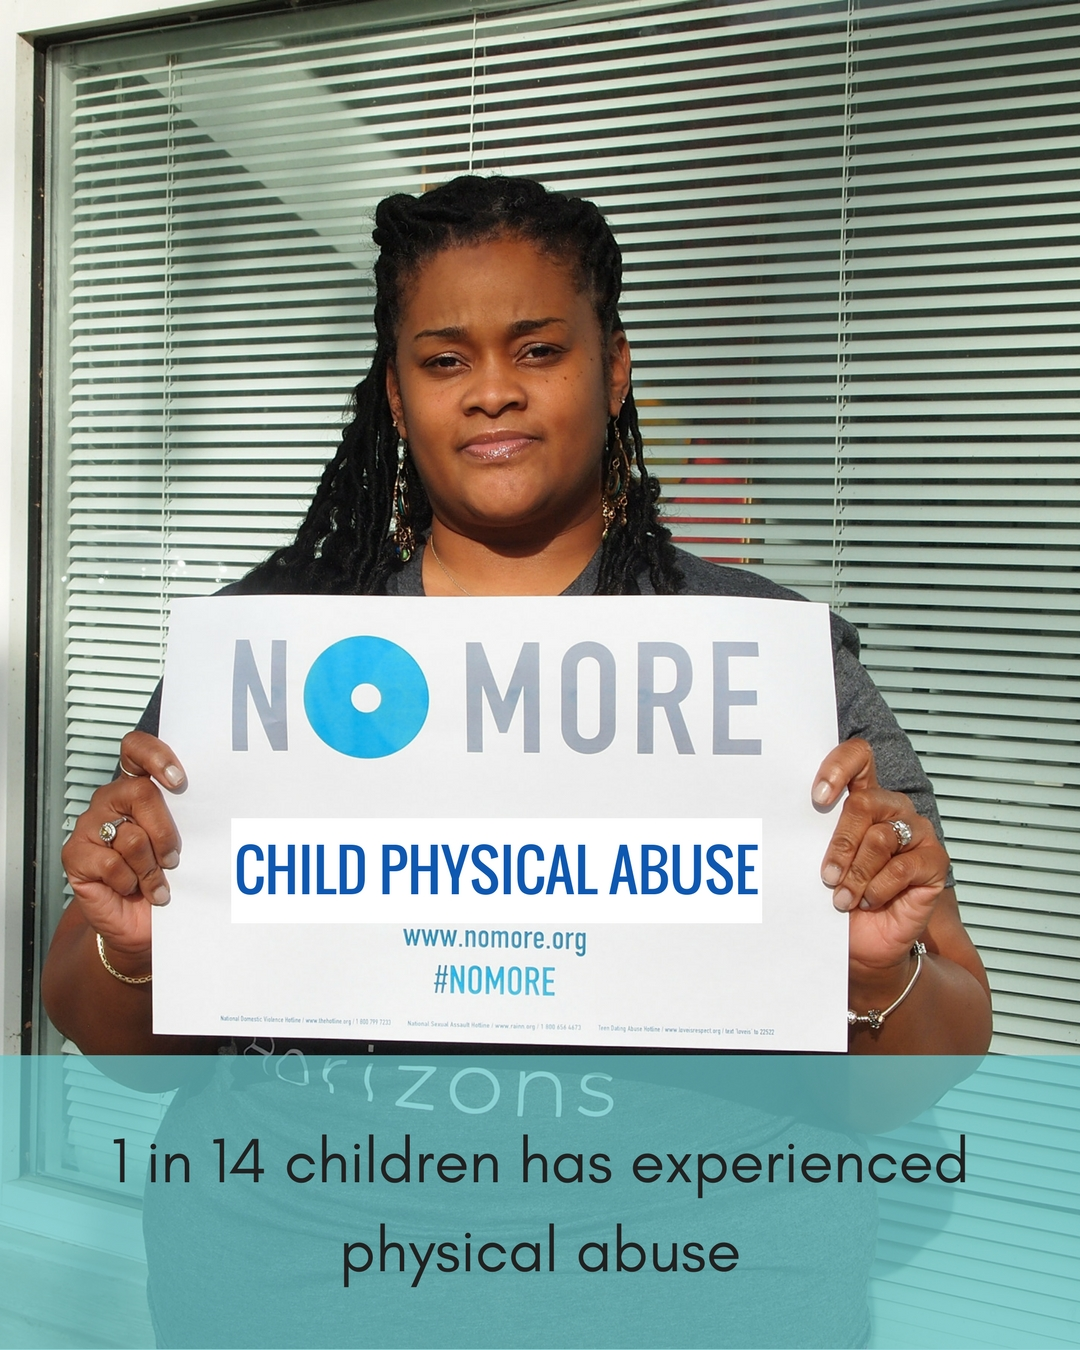 NO MORE Campaign-Child Physical Abuse